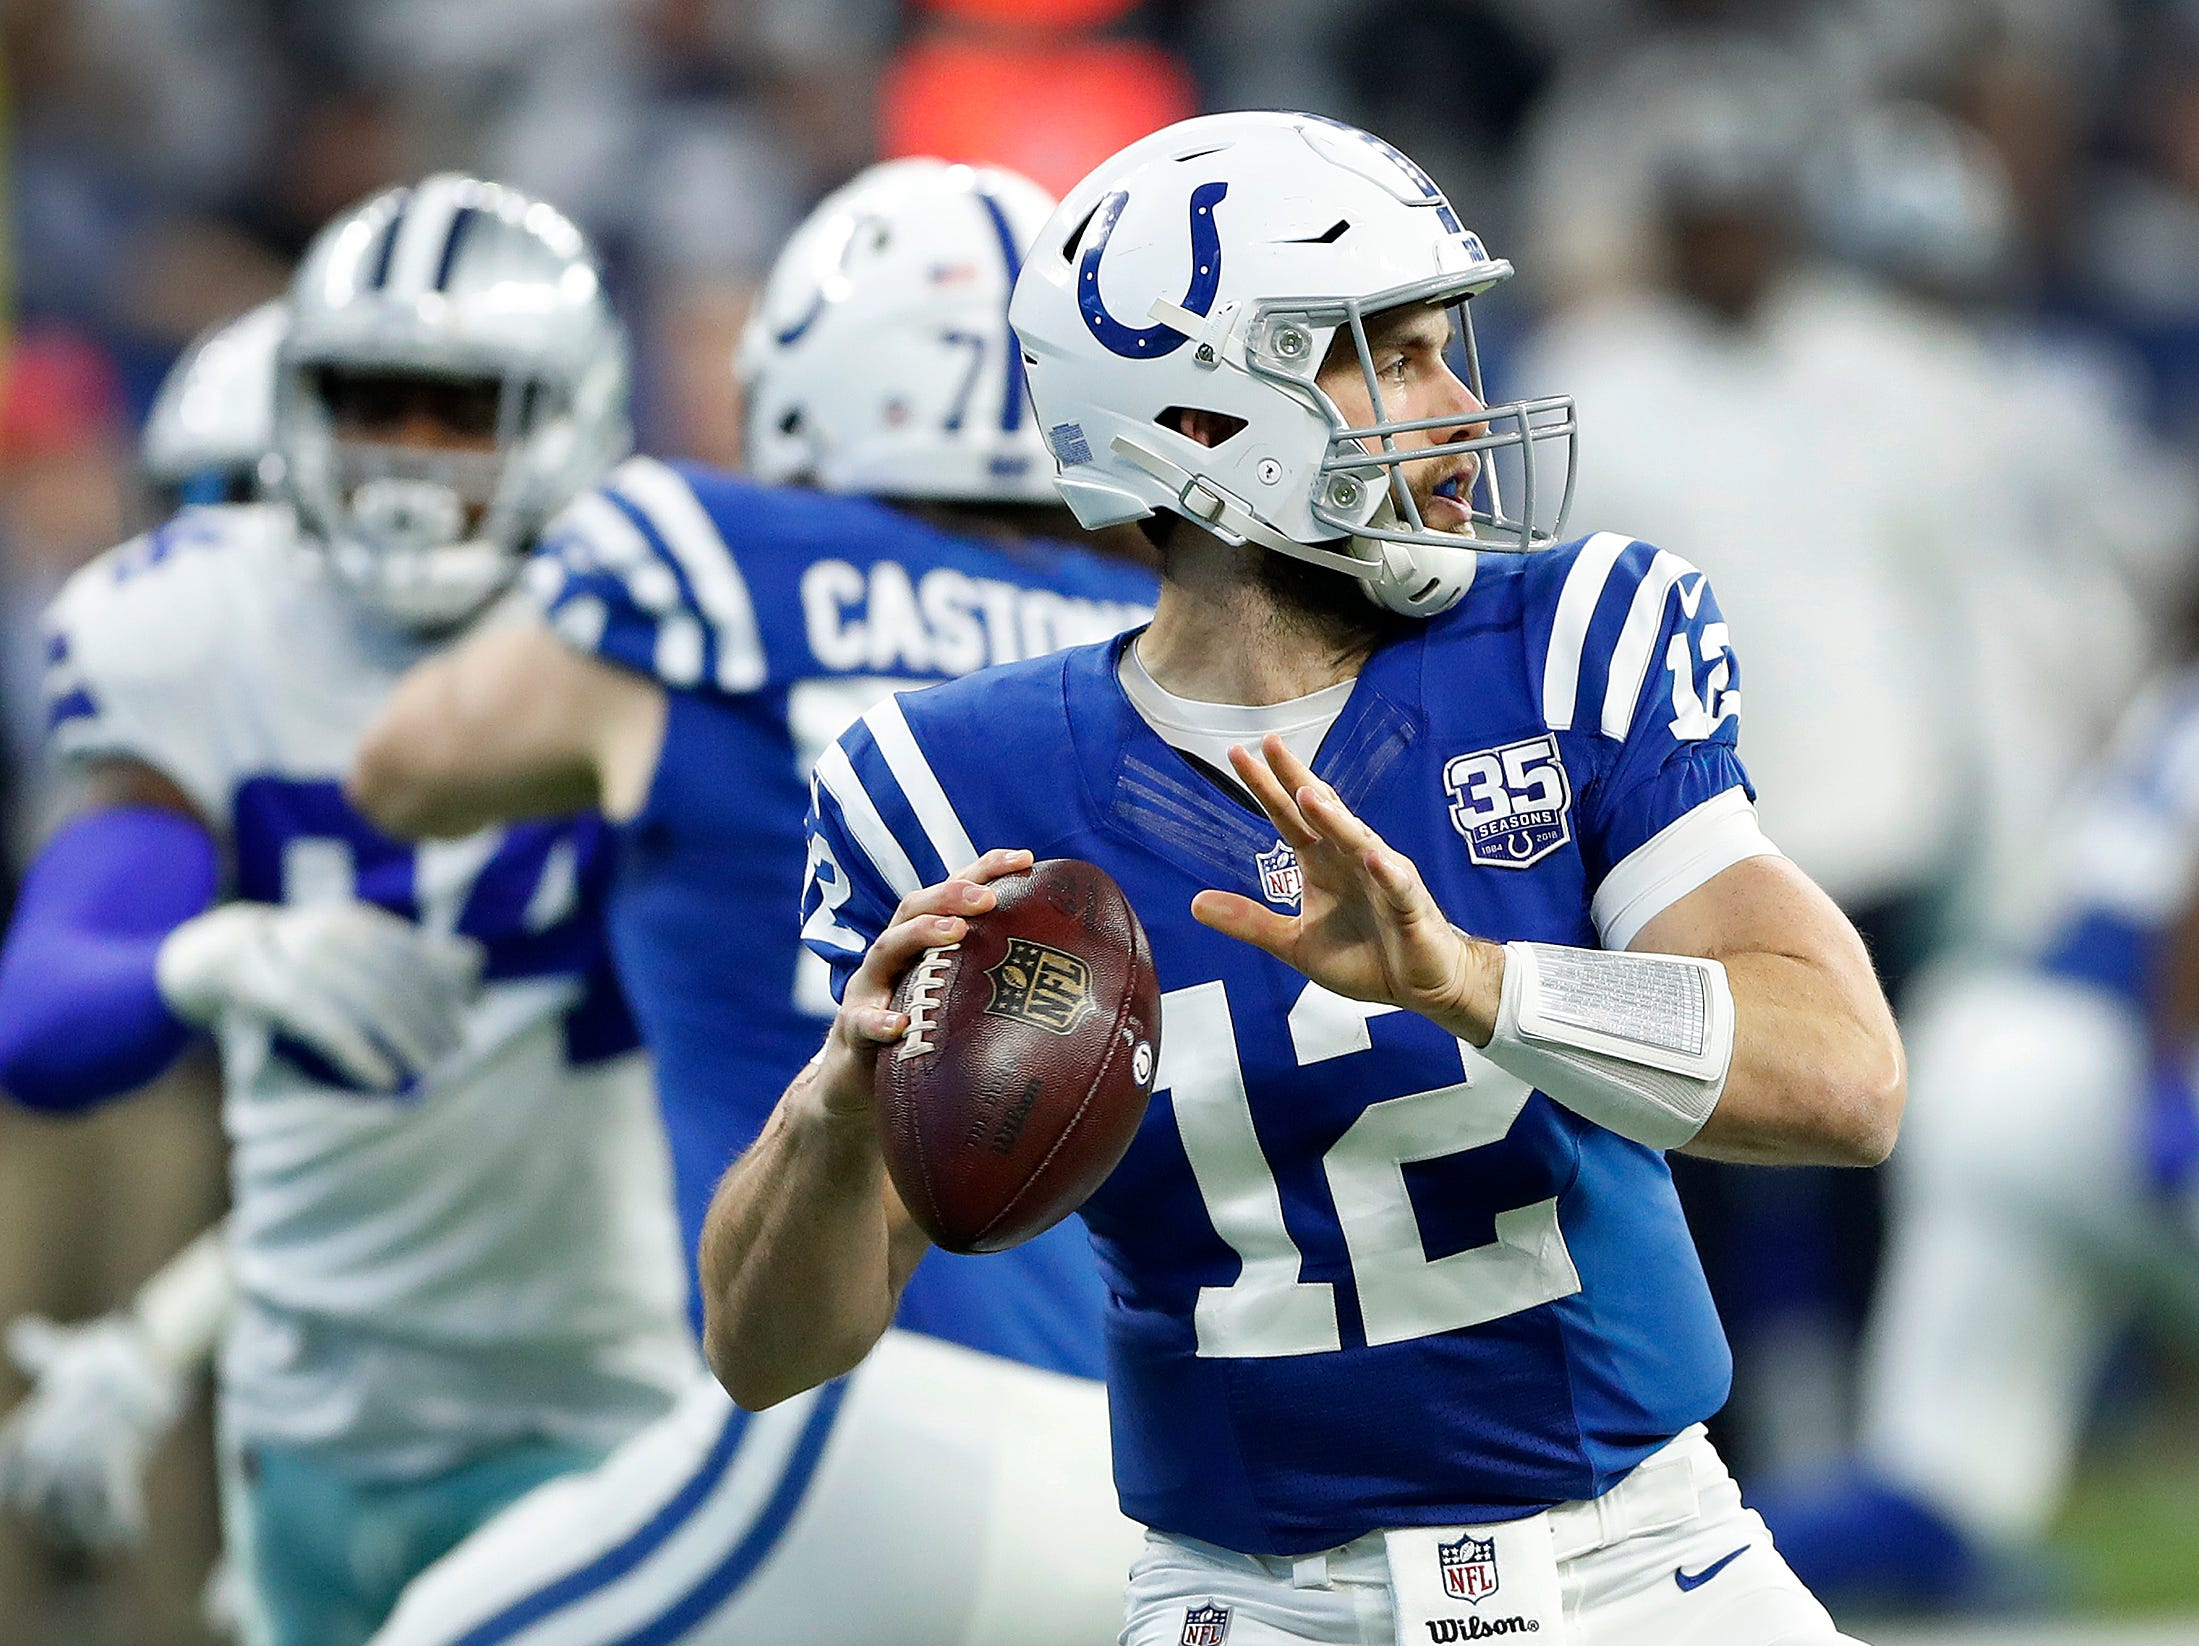 Indianapolis Colts quarterback Andrew Luck (12) drops back to pass in the first half of their game at Lucas Oil Stadium on Sunday, Dec. 16, 2018.